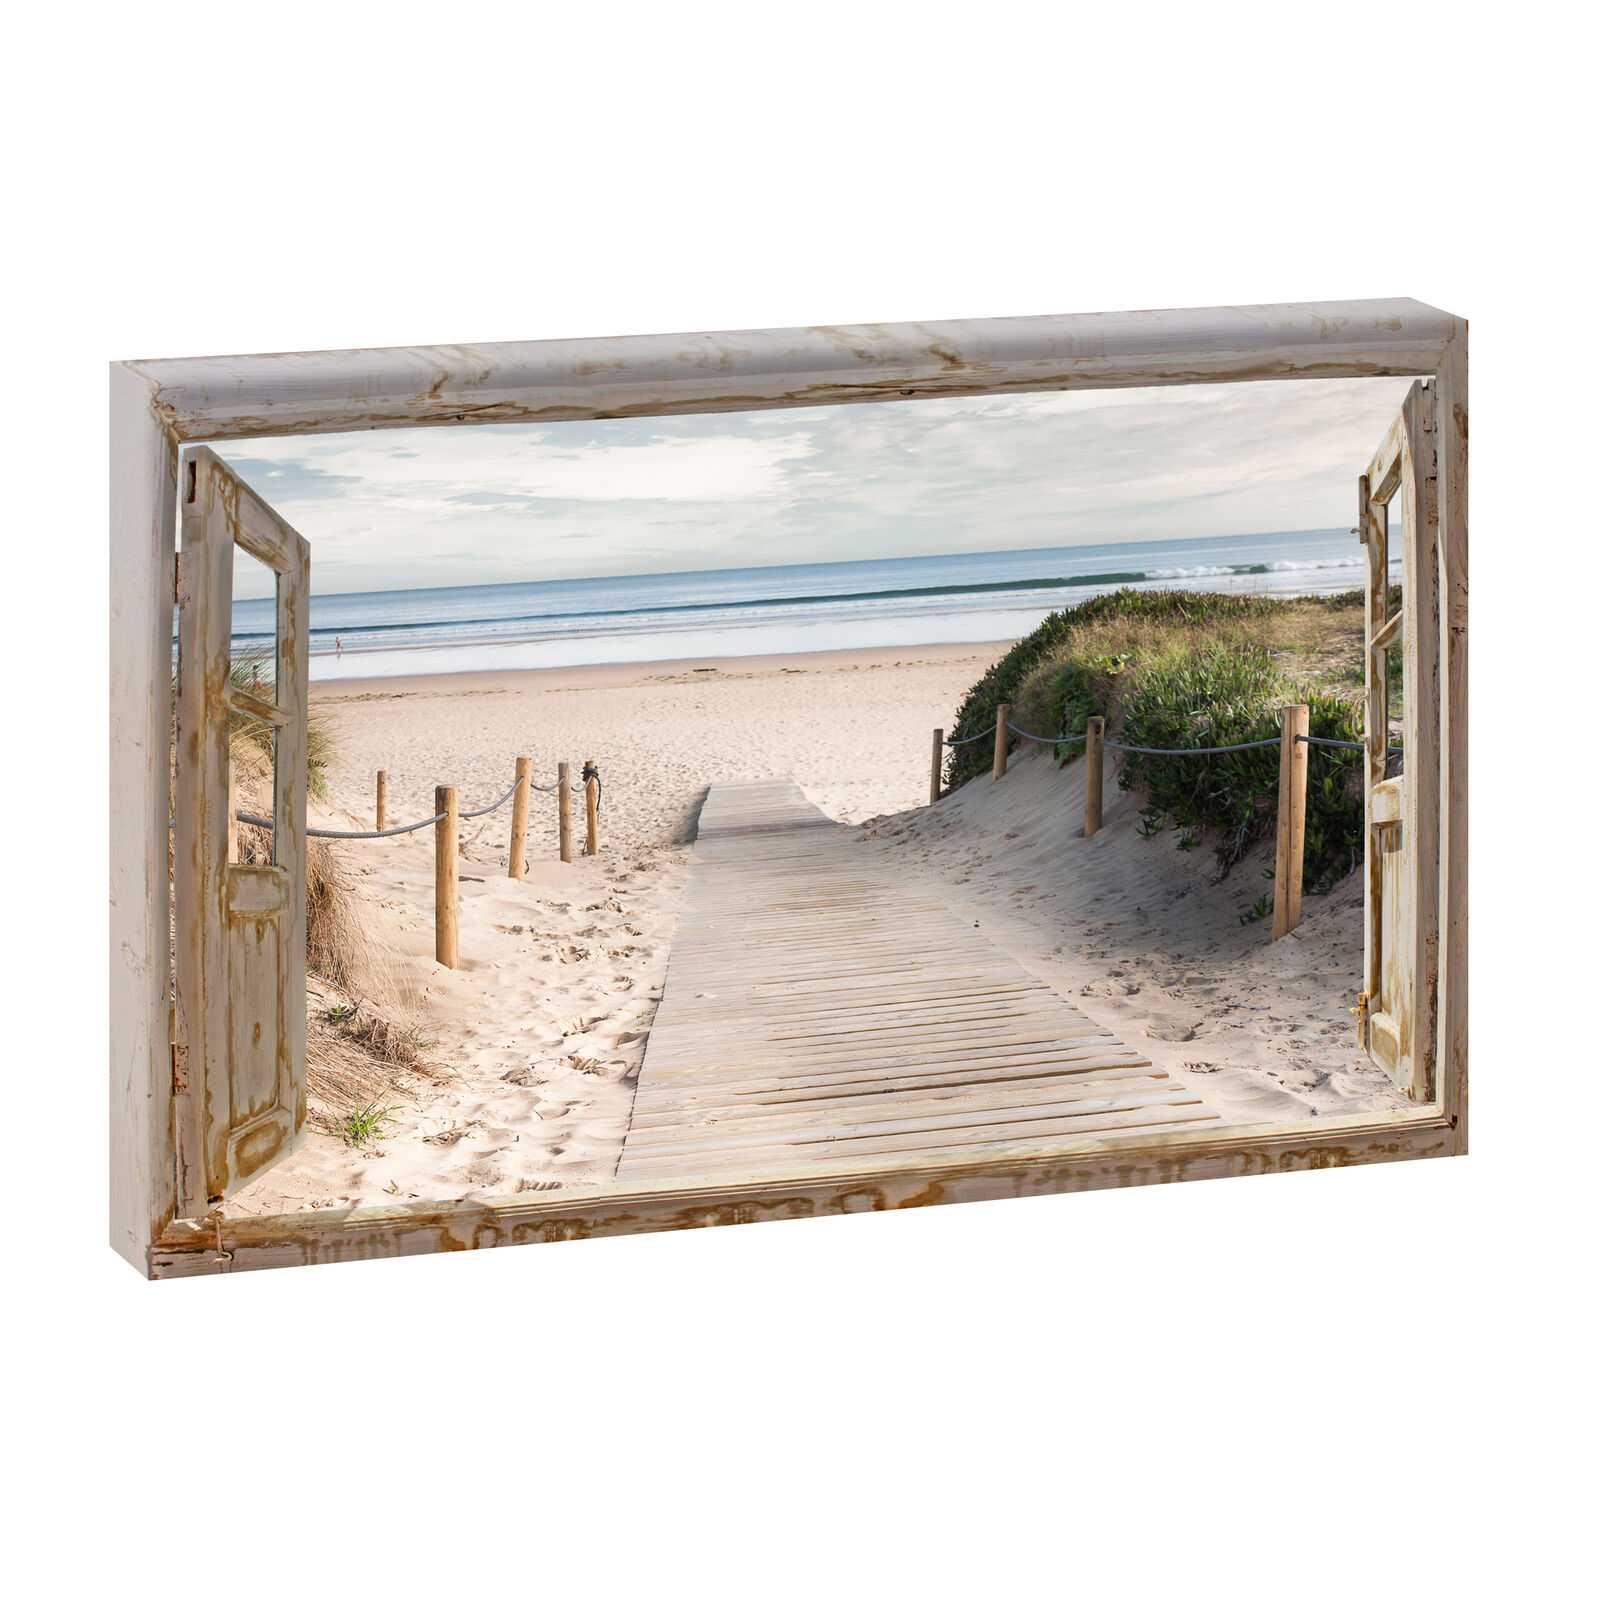 bild auf leinwand fensterblick nordsee strand meer poster xxl 120 cm 80 cm 623q eur 37 52. Black Bedroom Furniture Sets. Home Design Ideas